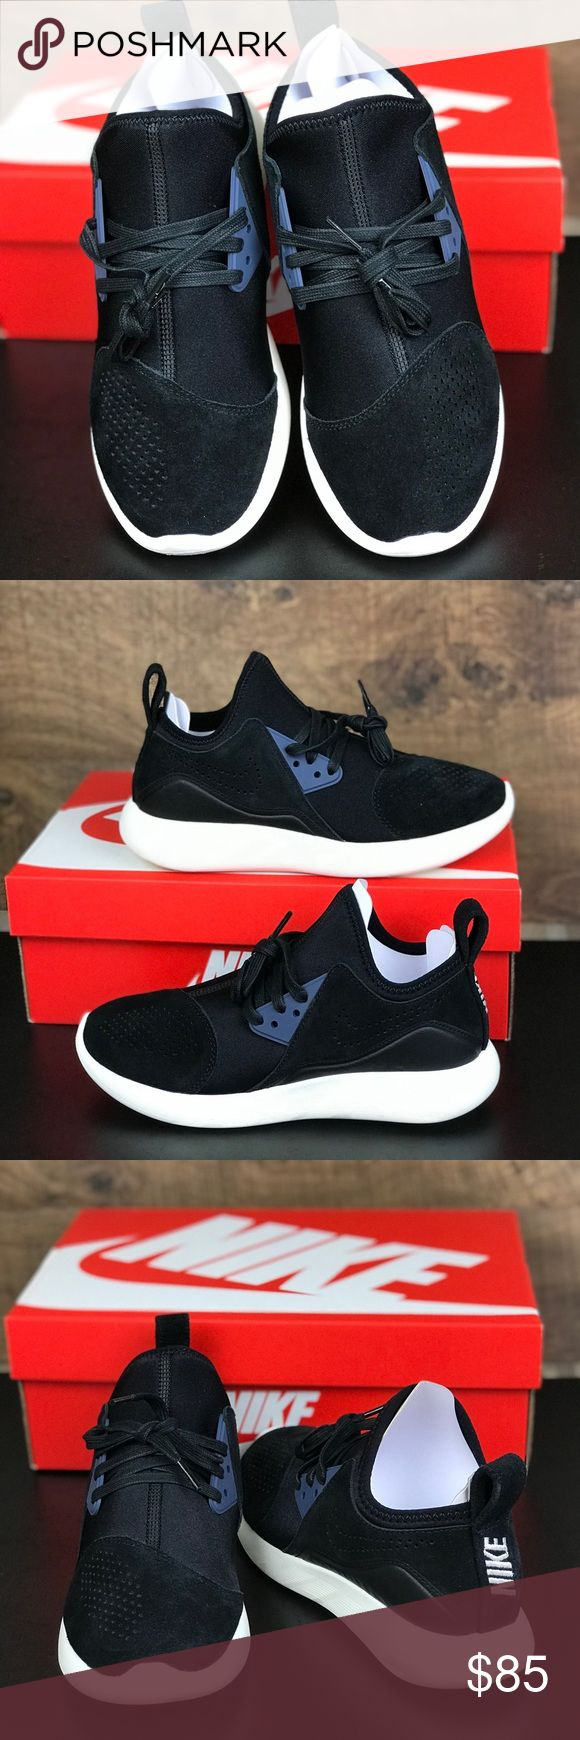 NWT Nike Lunarcharge PRM Black WMNS Brand new with box. Price is firm!  Lunarlon foam teams up with a breathable cut-and-sew upper on this easygoing, soon to be favorite sneaker. Built for all day comfort, these laid back sneaks boast a foot-hugging stretchy suede/synthetic/textile upper, while the bootie construction and heel pull tab ensure you can pull these babies on easily. Flexible and light, these sneakers also feature laser-cut pods for enhanced traction as you take on the day. Nike…